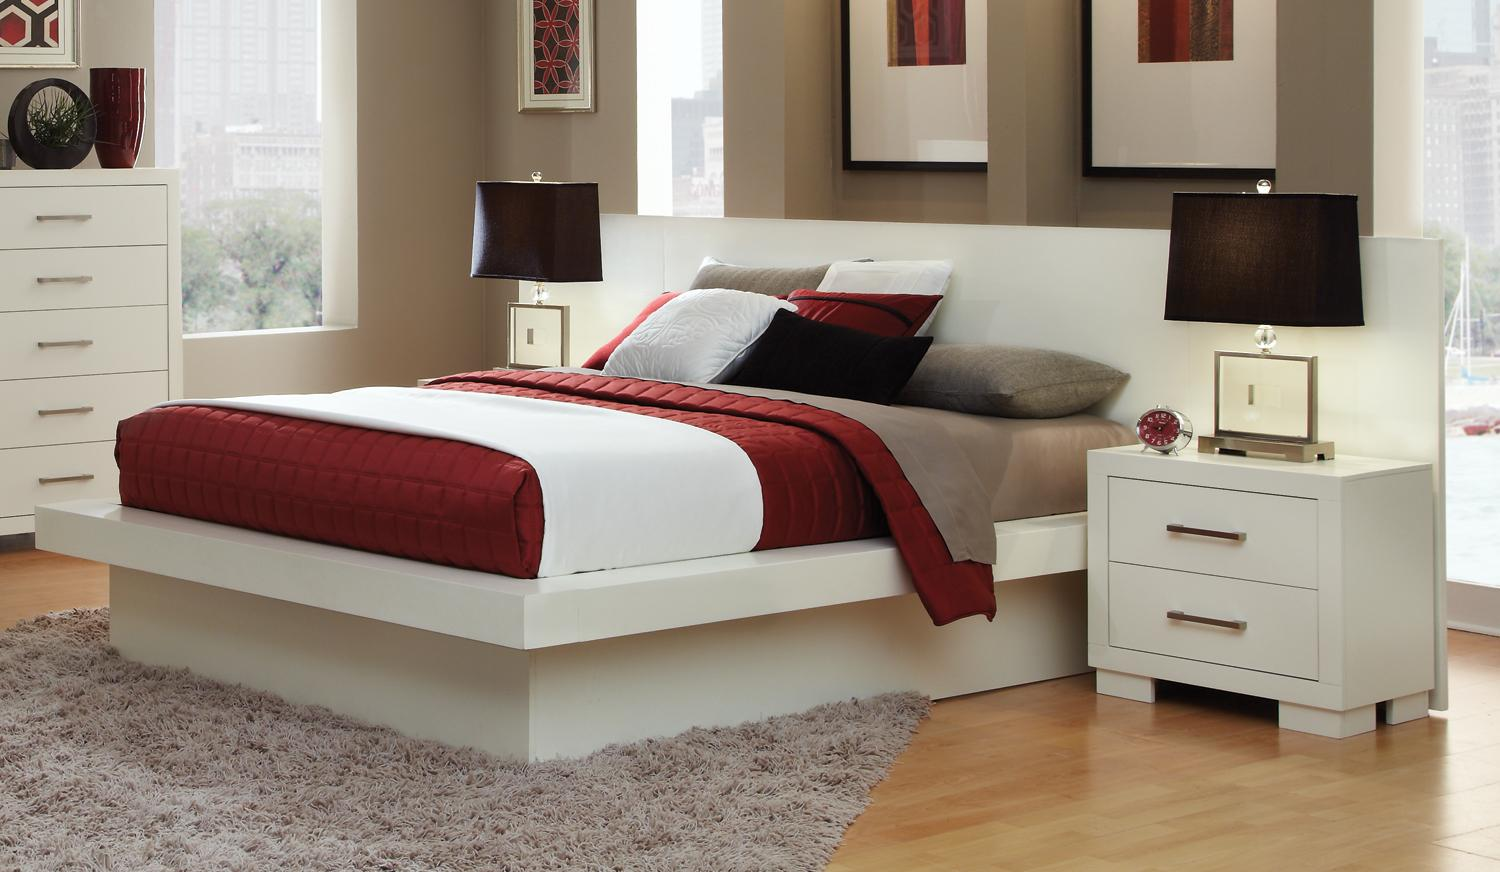 Coaster Jessica White Cal King Bed Dallas Tx Bedroom Bed Furniture Nation,Vital Proteins Collagen Creamer Review